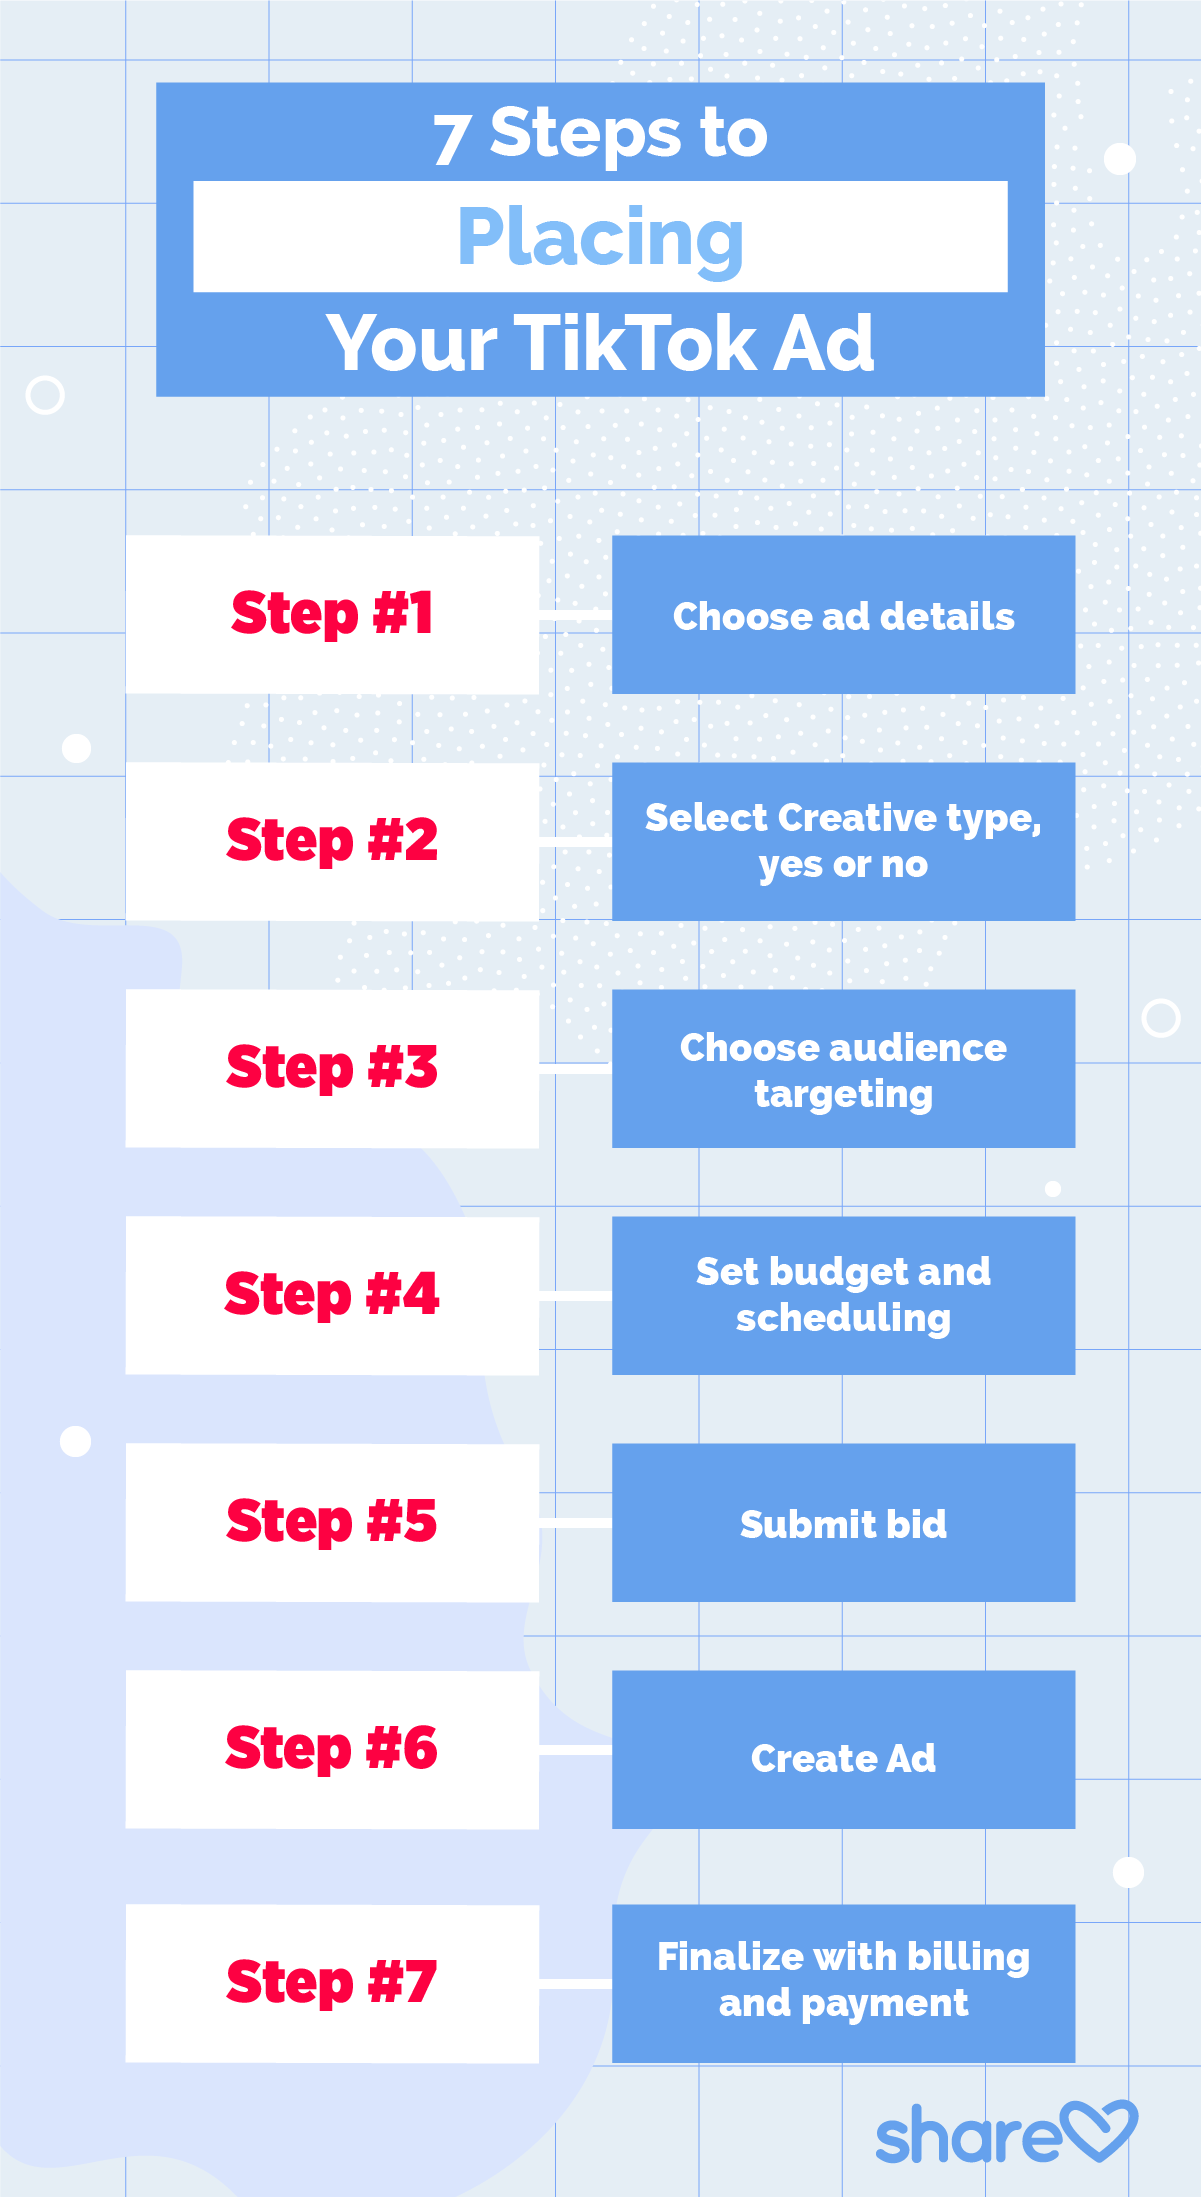 7 Steps to Placing Your TikTok Ad